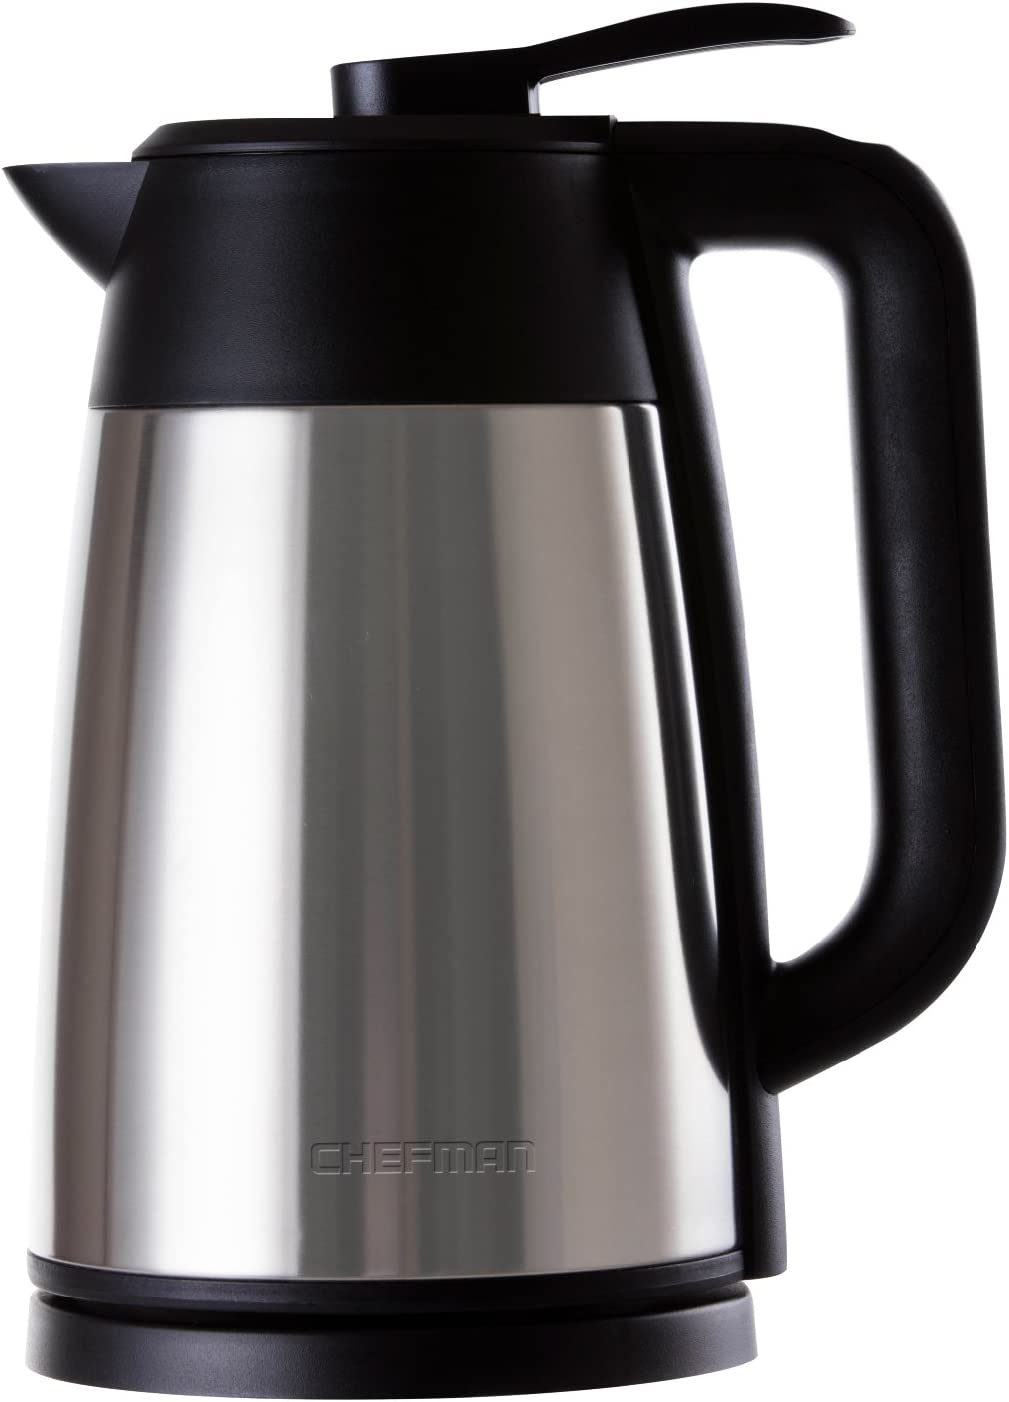 Chefman Stainless Steel Premium Grade Carafe Style w/Digital Temp Display, Heat Retaining Vacuum Seal, Auto Shut Off & Boil Dry Protection, 7+ Cup 1.7L/1.8qt